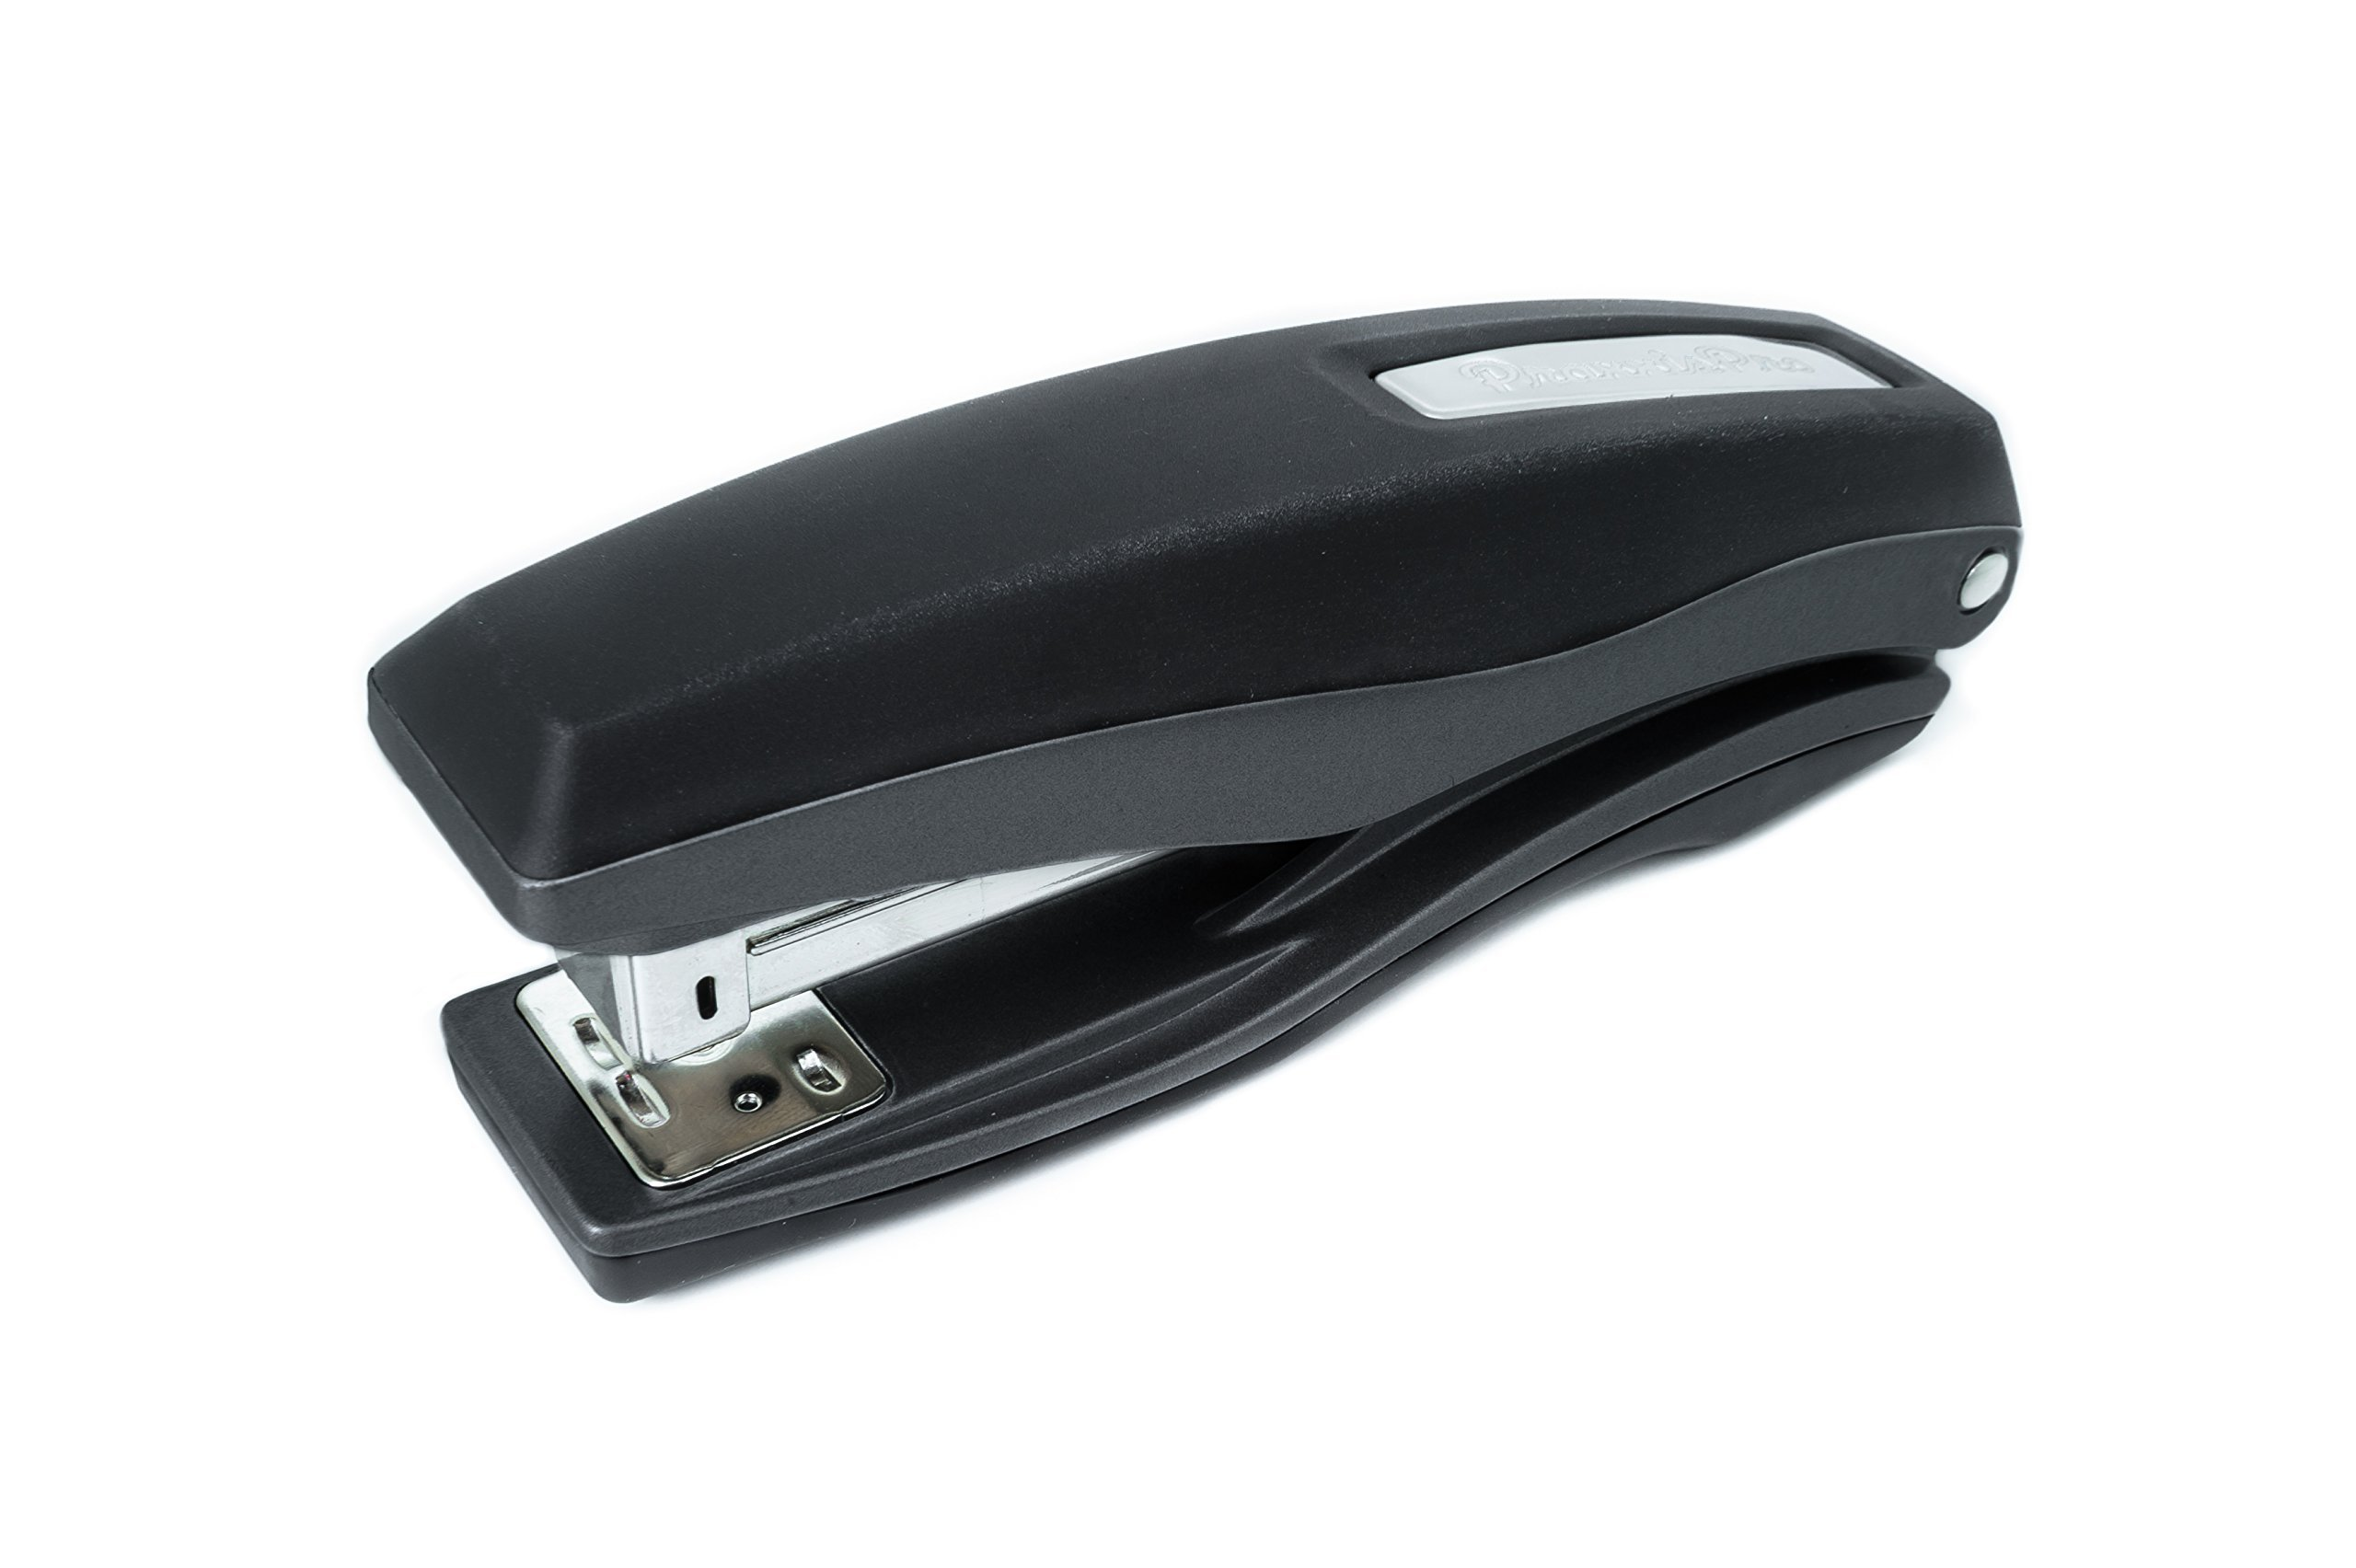 PraxxisPro Basileus Heavy Duty Metal Stapler Value Pack with 25 Sheet Capacity - Includes Staples and Staple Remover - Jam Free Stapler Set for Professional and Home Office Use (Black)